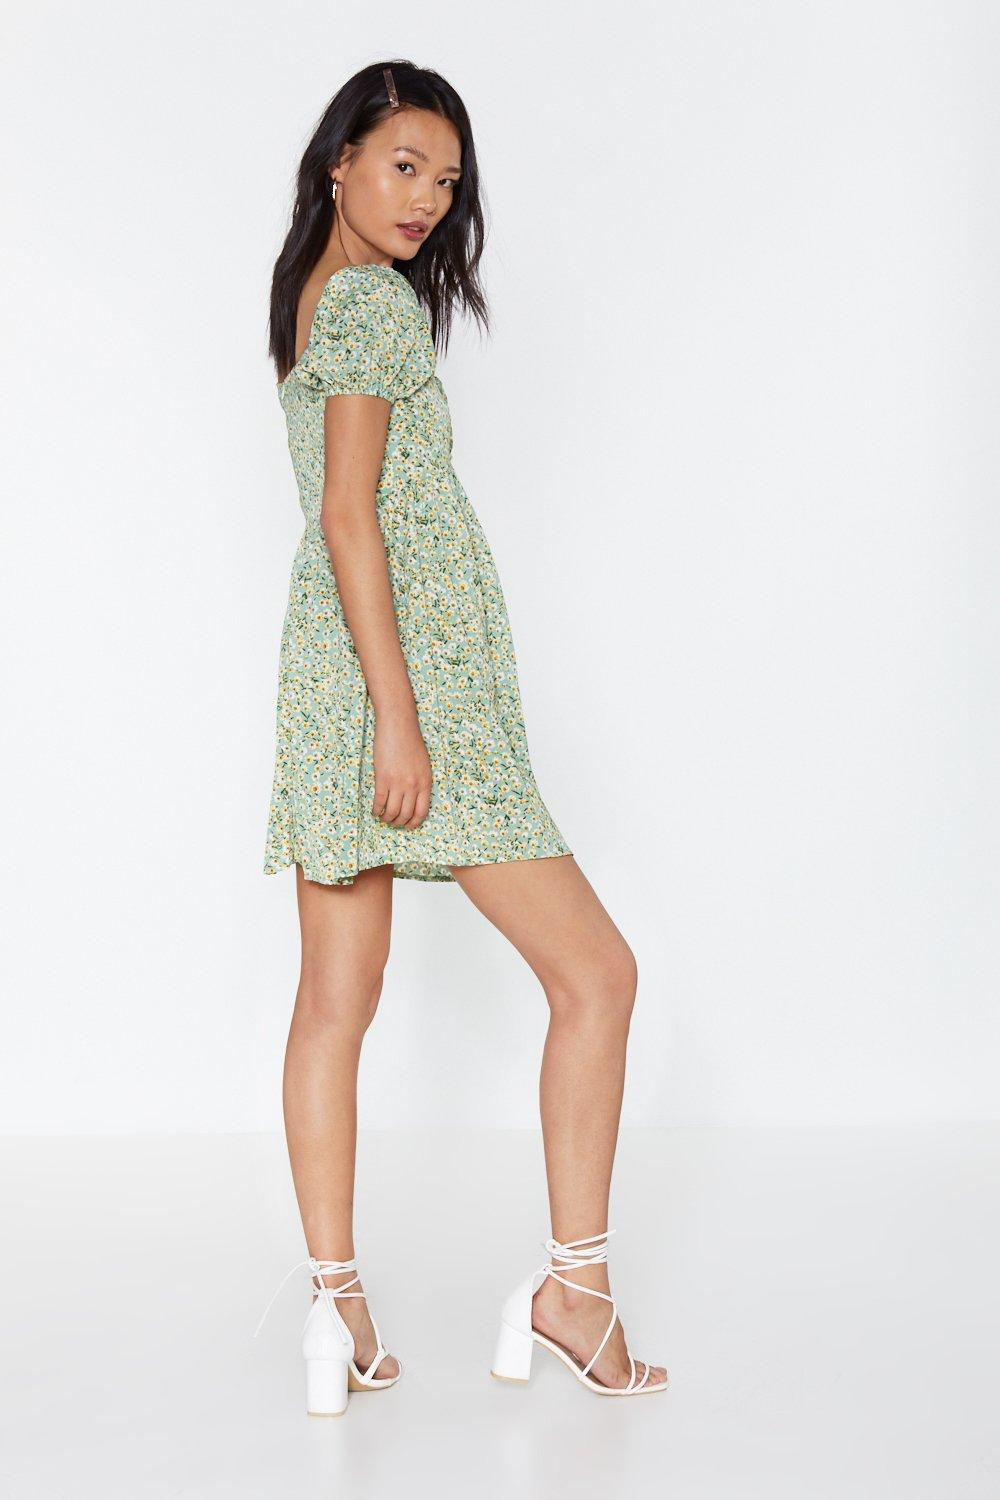 017a04dcc09 Where Love Grows Floral Puff Sleeve Dress | Shop Clothes at Nasty Gal!